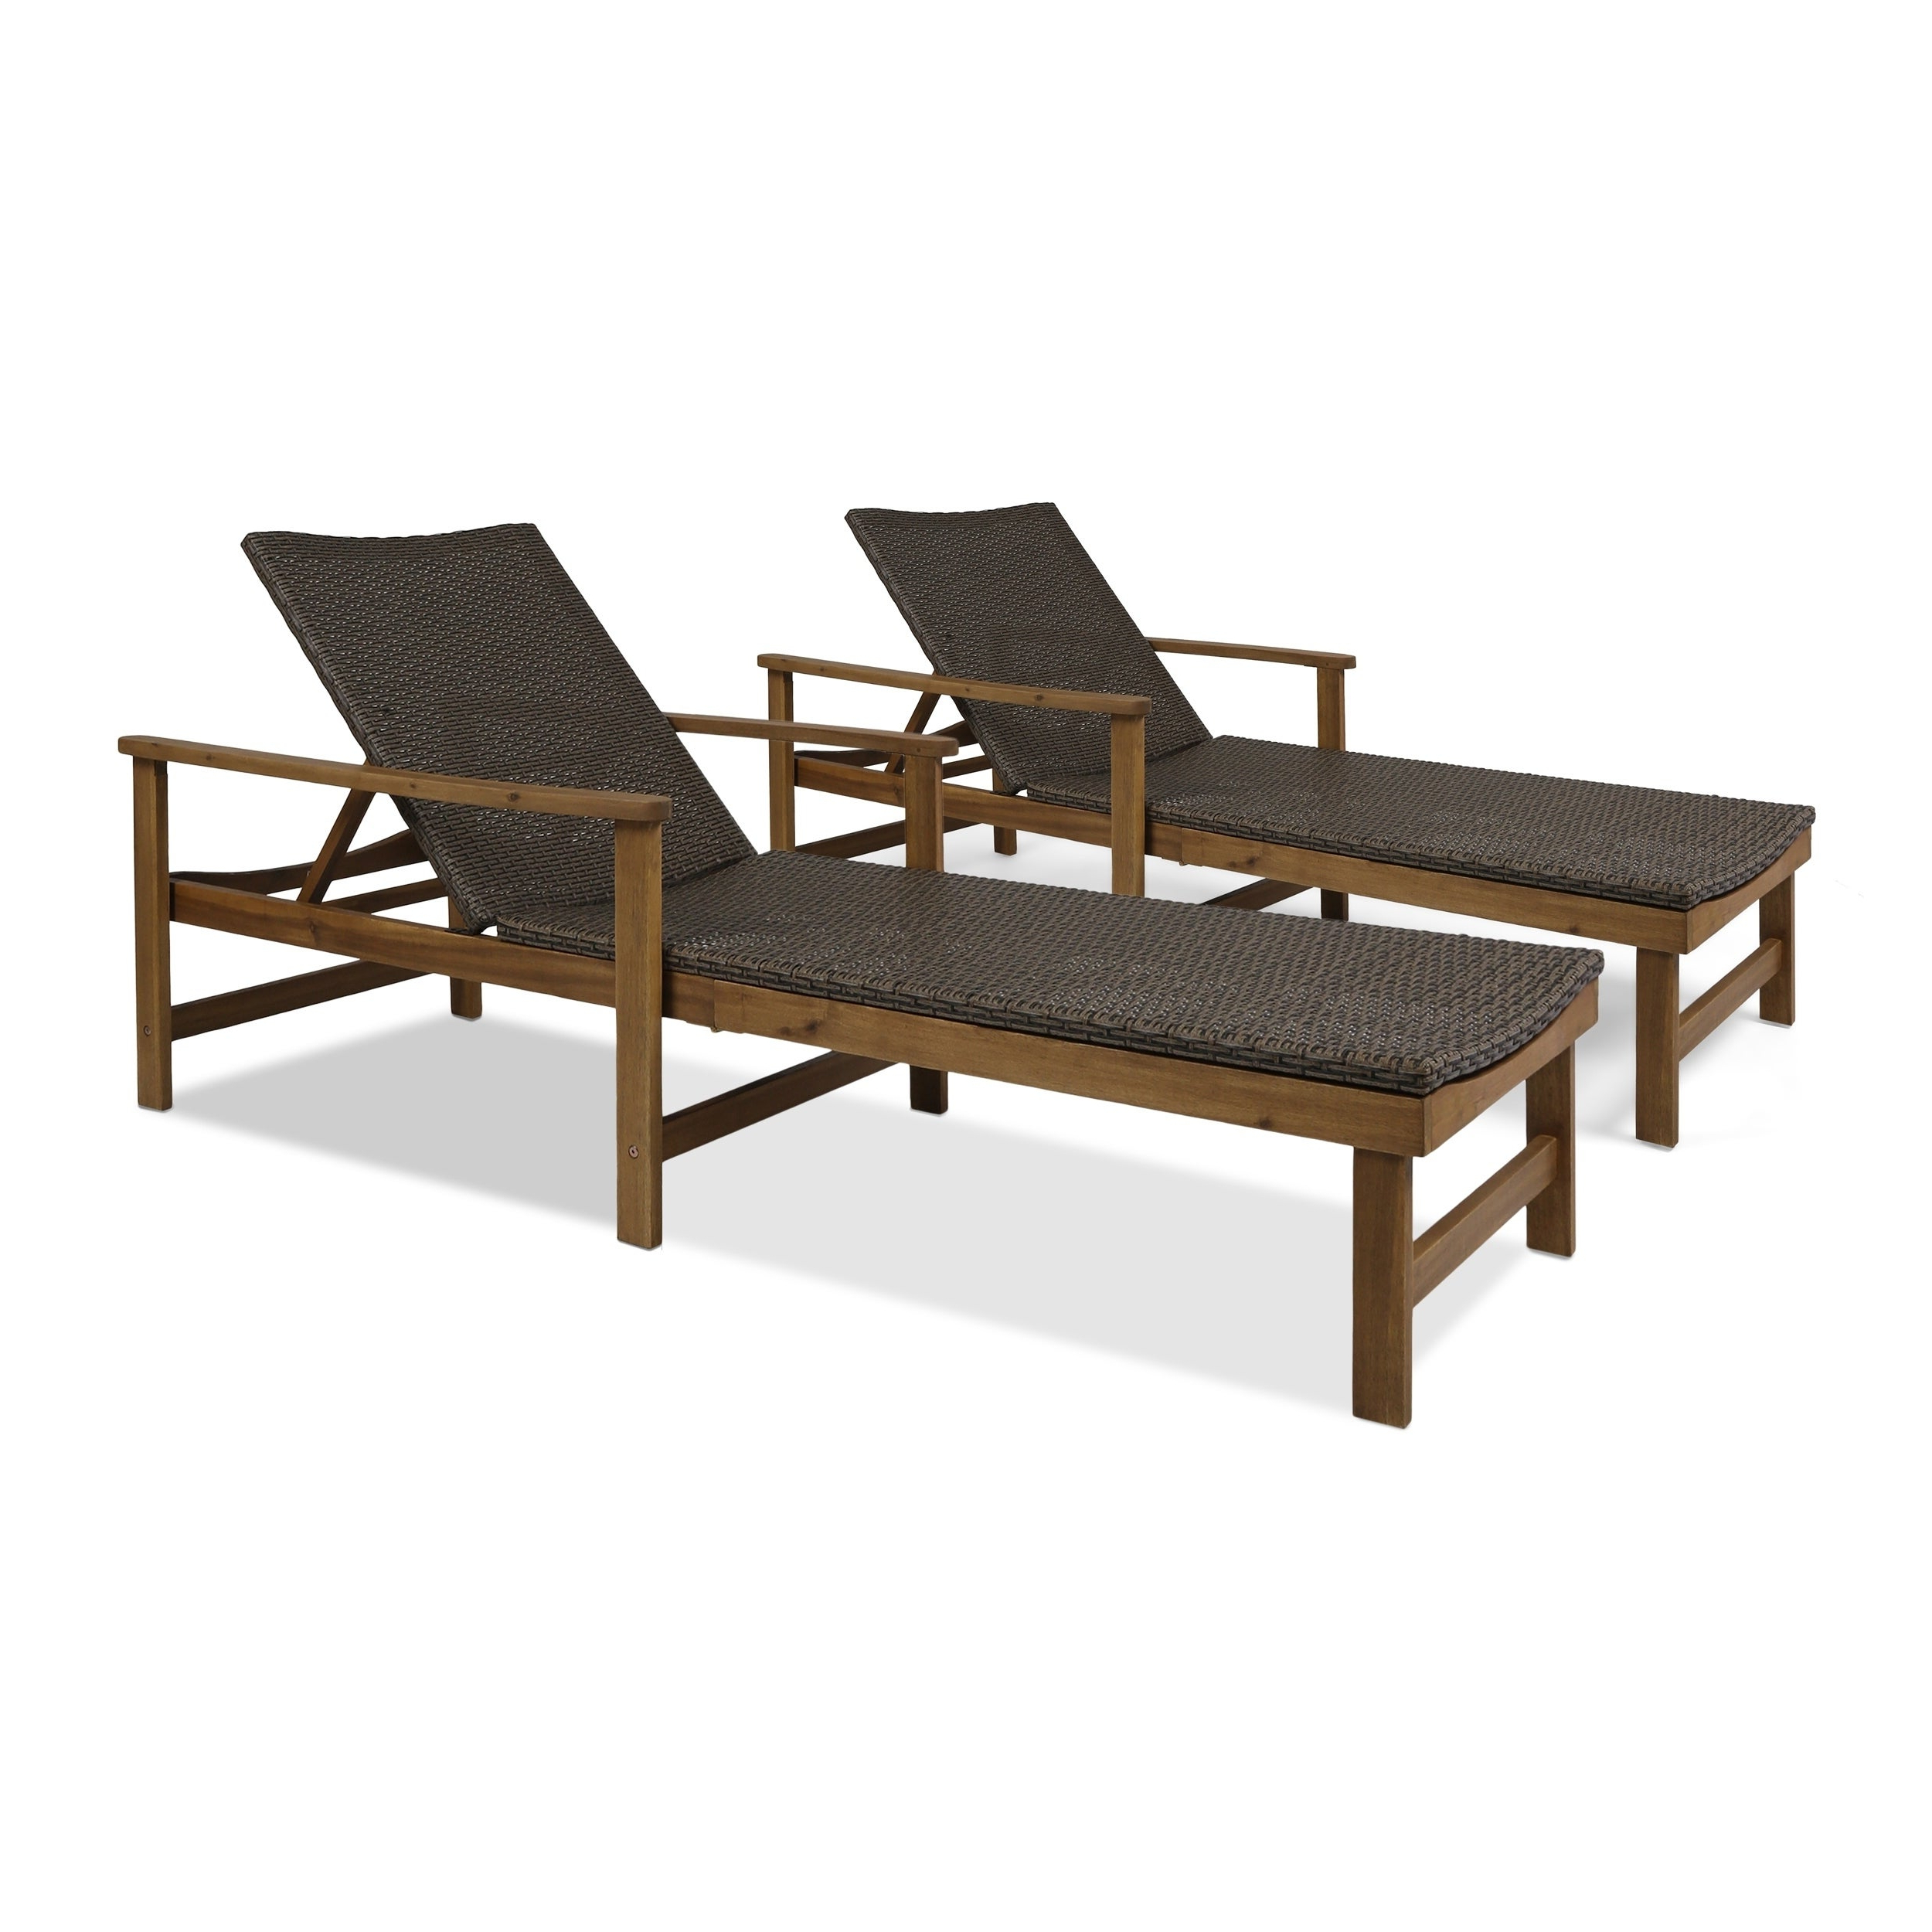 Hampton Outdoor Chaise Lounges Acacia Wood And Wicker (Set Of 2) Christopher Knight Home Intended For Favorite Outdoor 3 Piece Acacia Wood Chaise Lounge Sets (View 13 of 25)